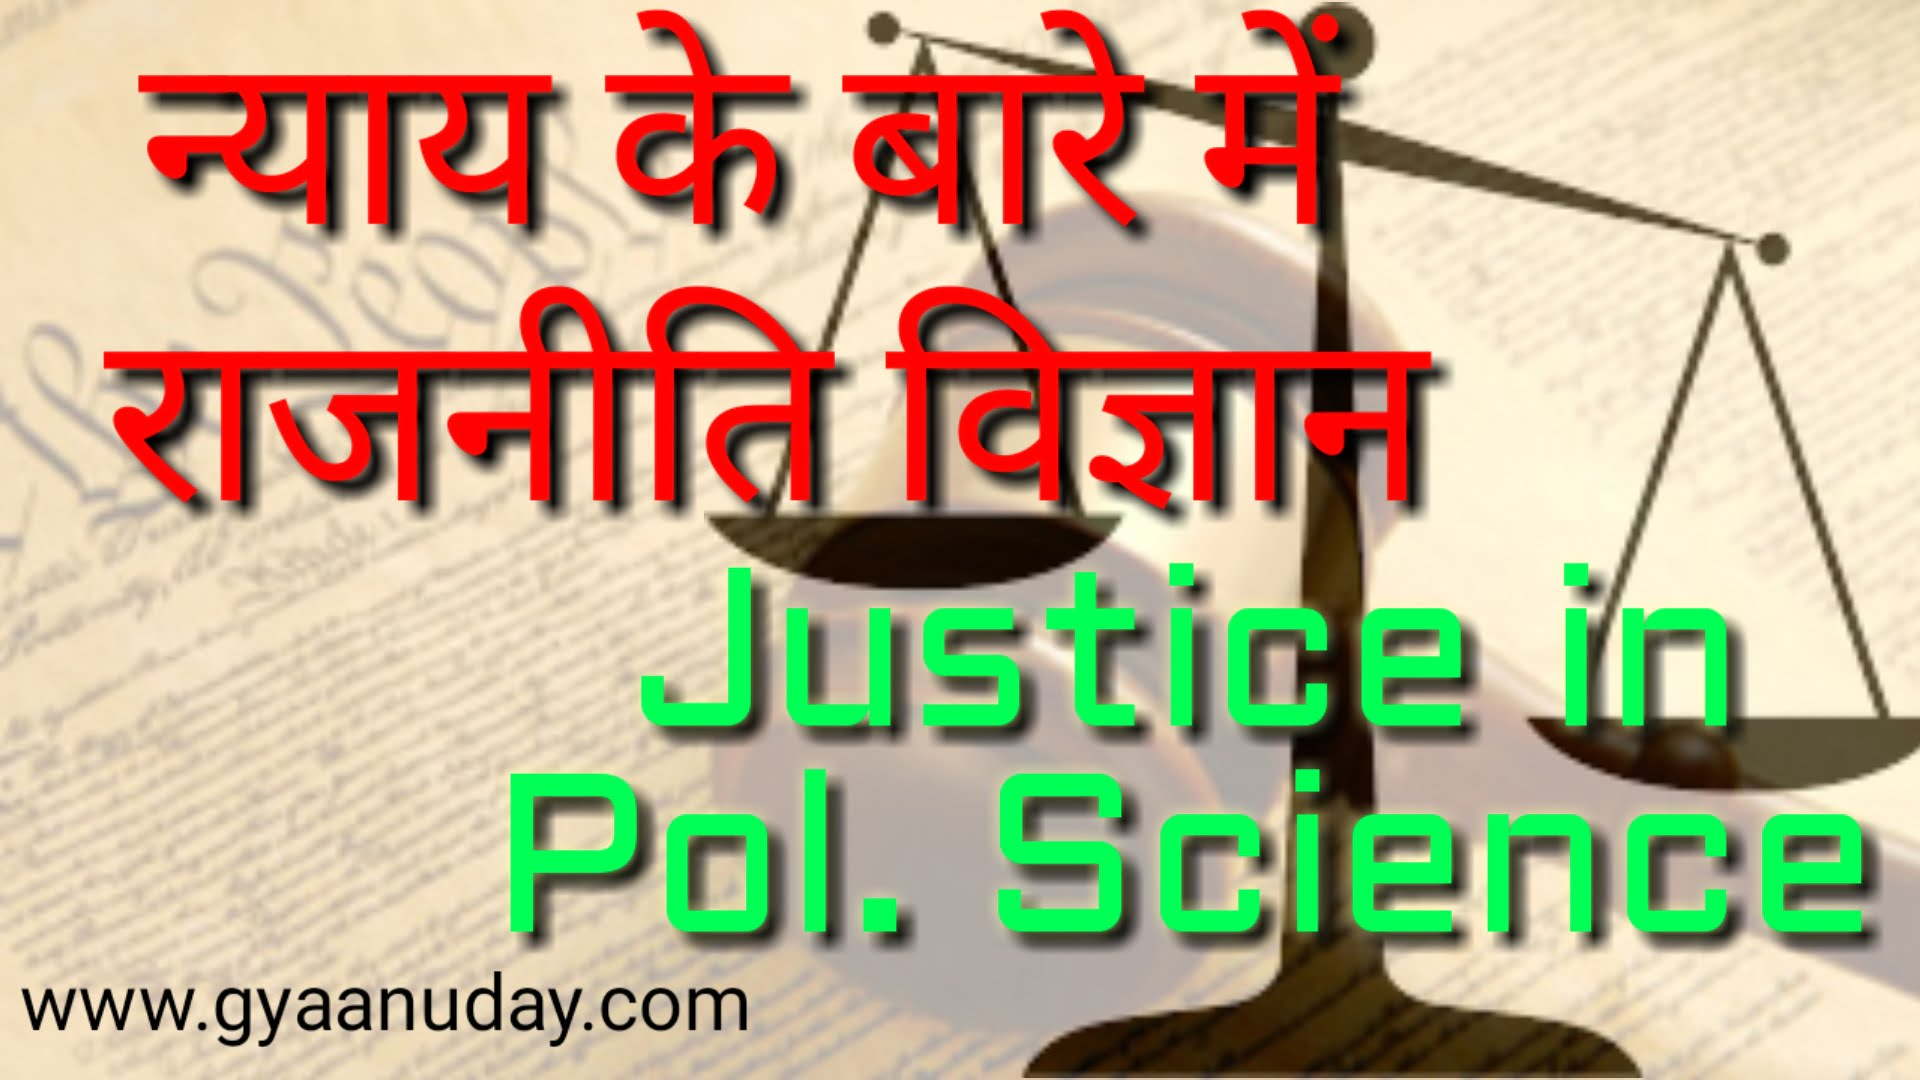 Justice in Political Science